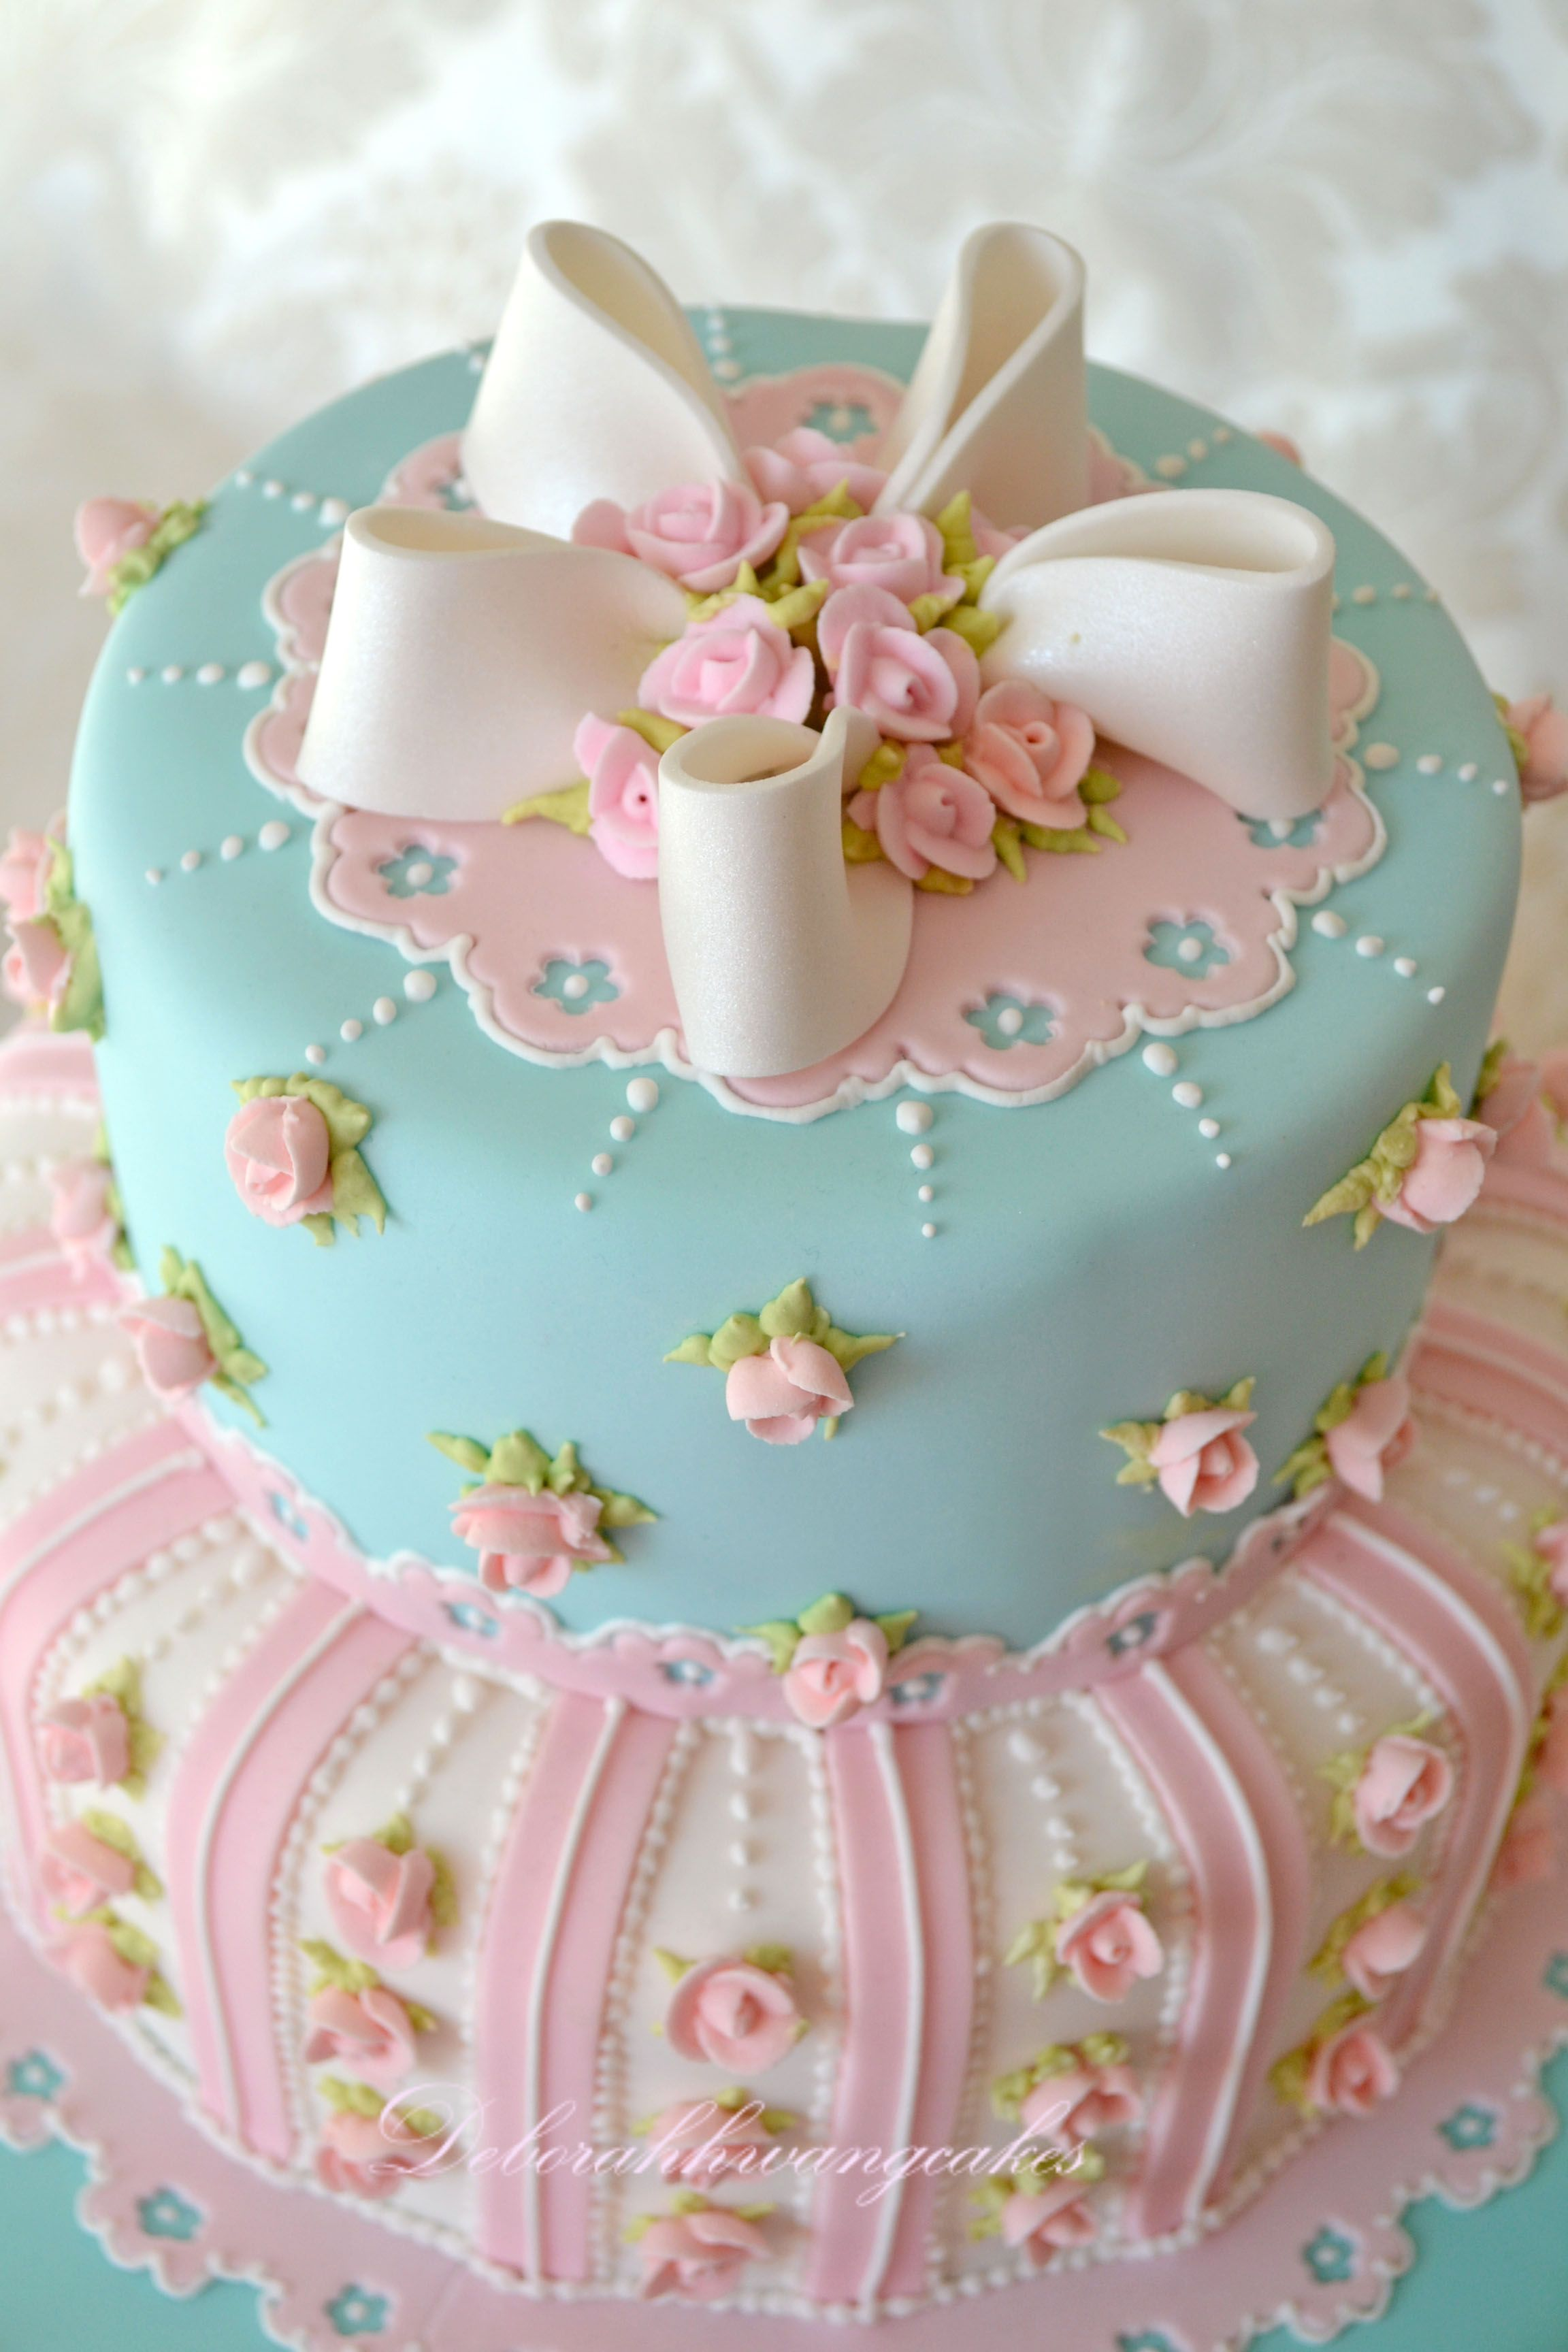 THIS Cake For A Girls Birthday Or Tea Party If Its Girl It Matches The Pottery Barn Bedding I Have Picked Out